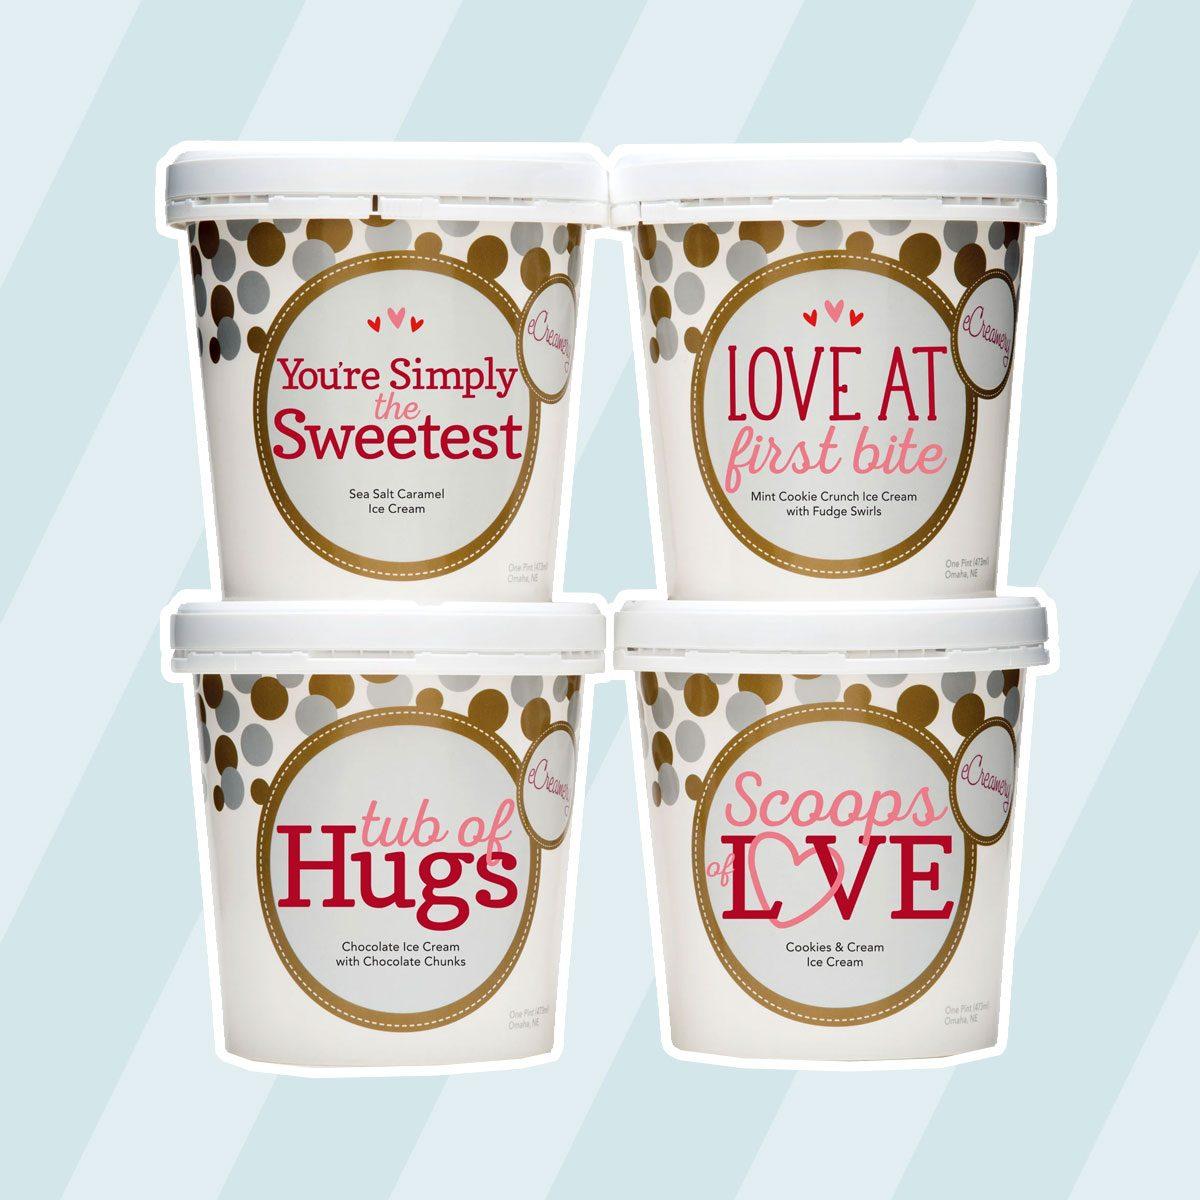 Tubs Of Hugs Ice Cream